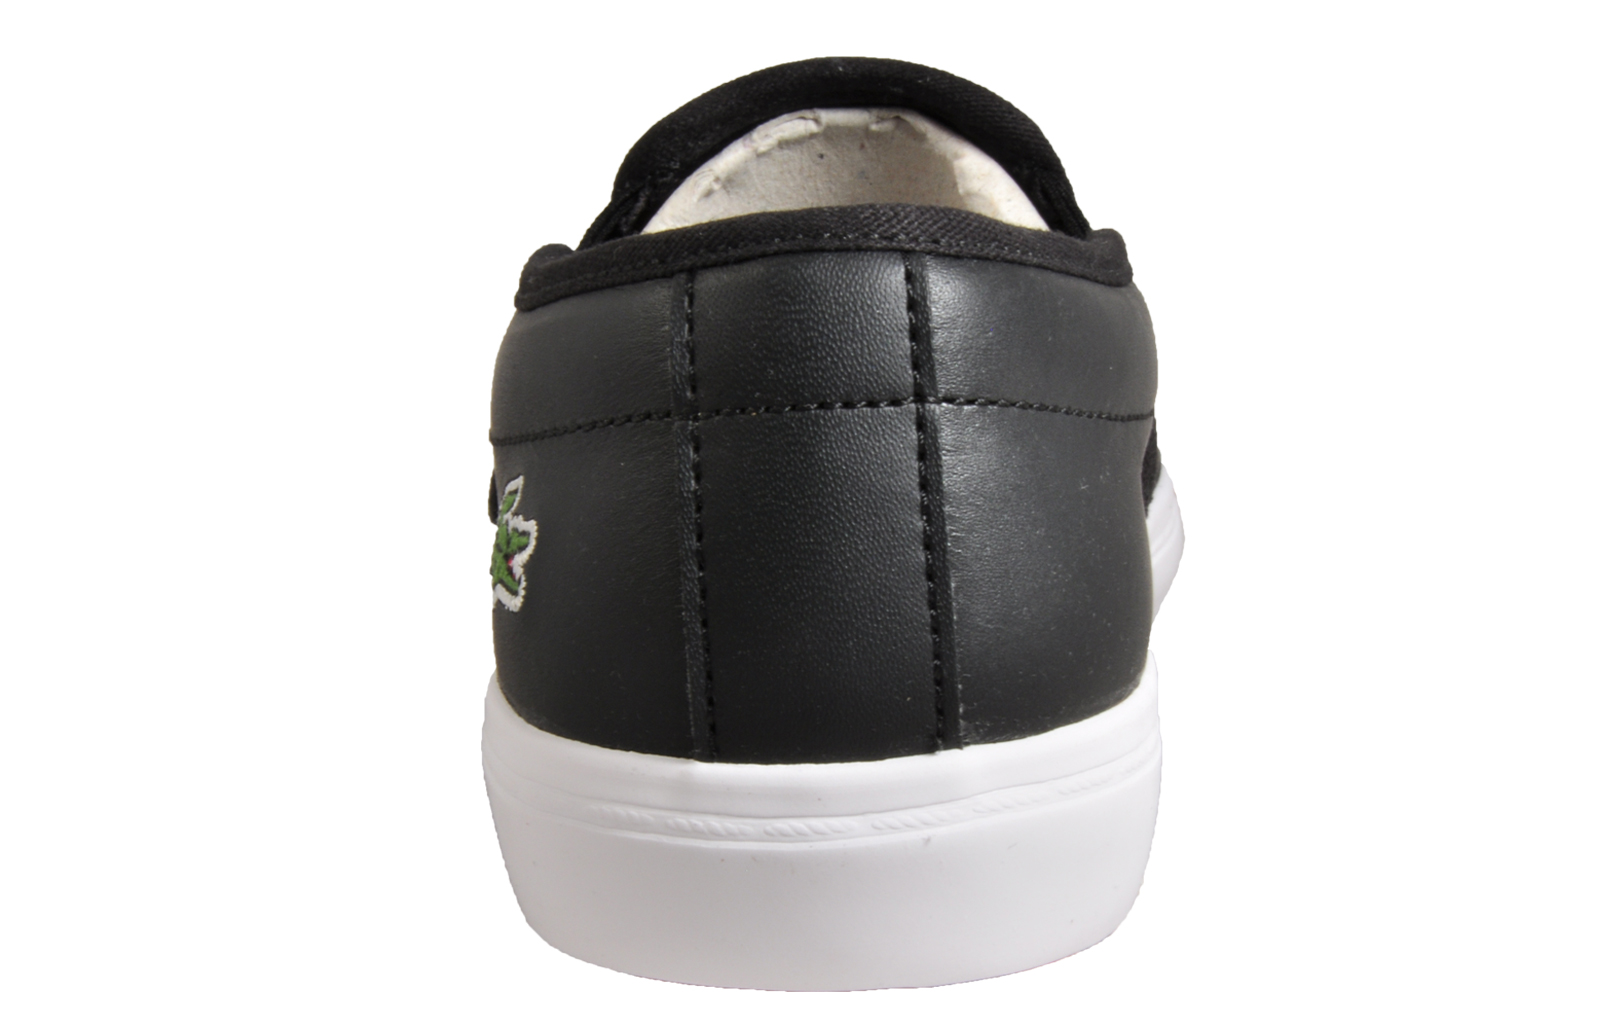 2b65bea5b78c4 Lacoste Gazon BL Womens Slip On Leather Retro Designer Trainers Black B  Grade